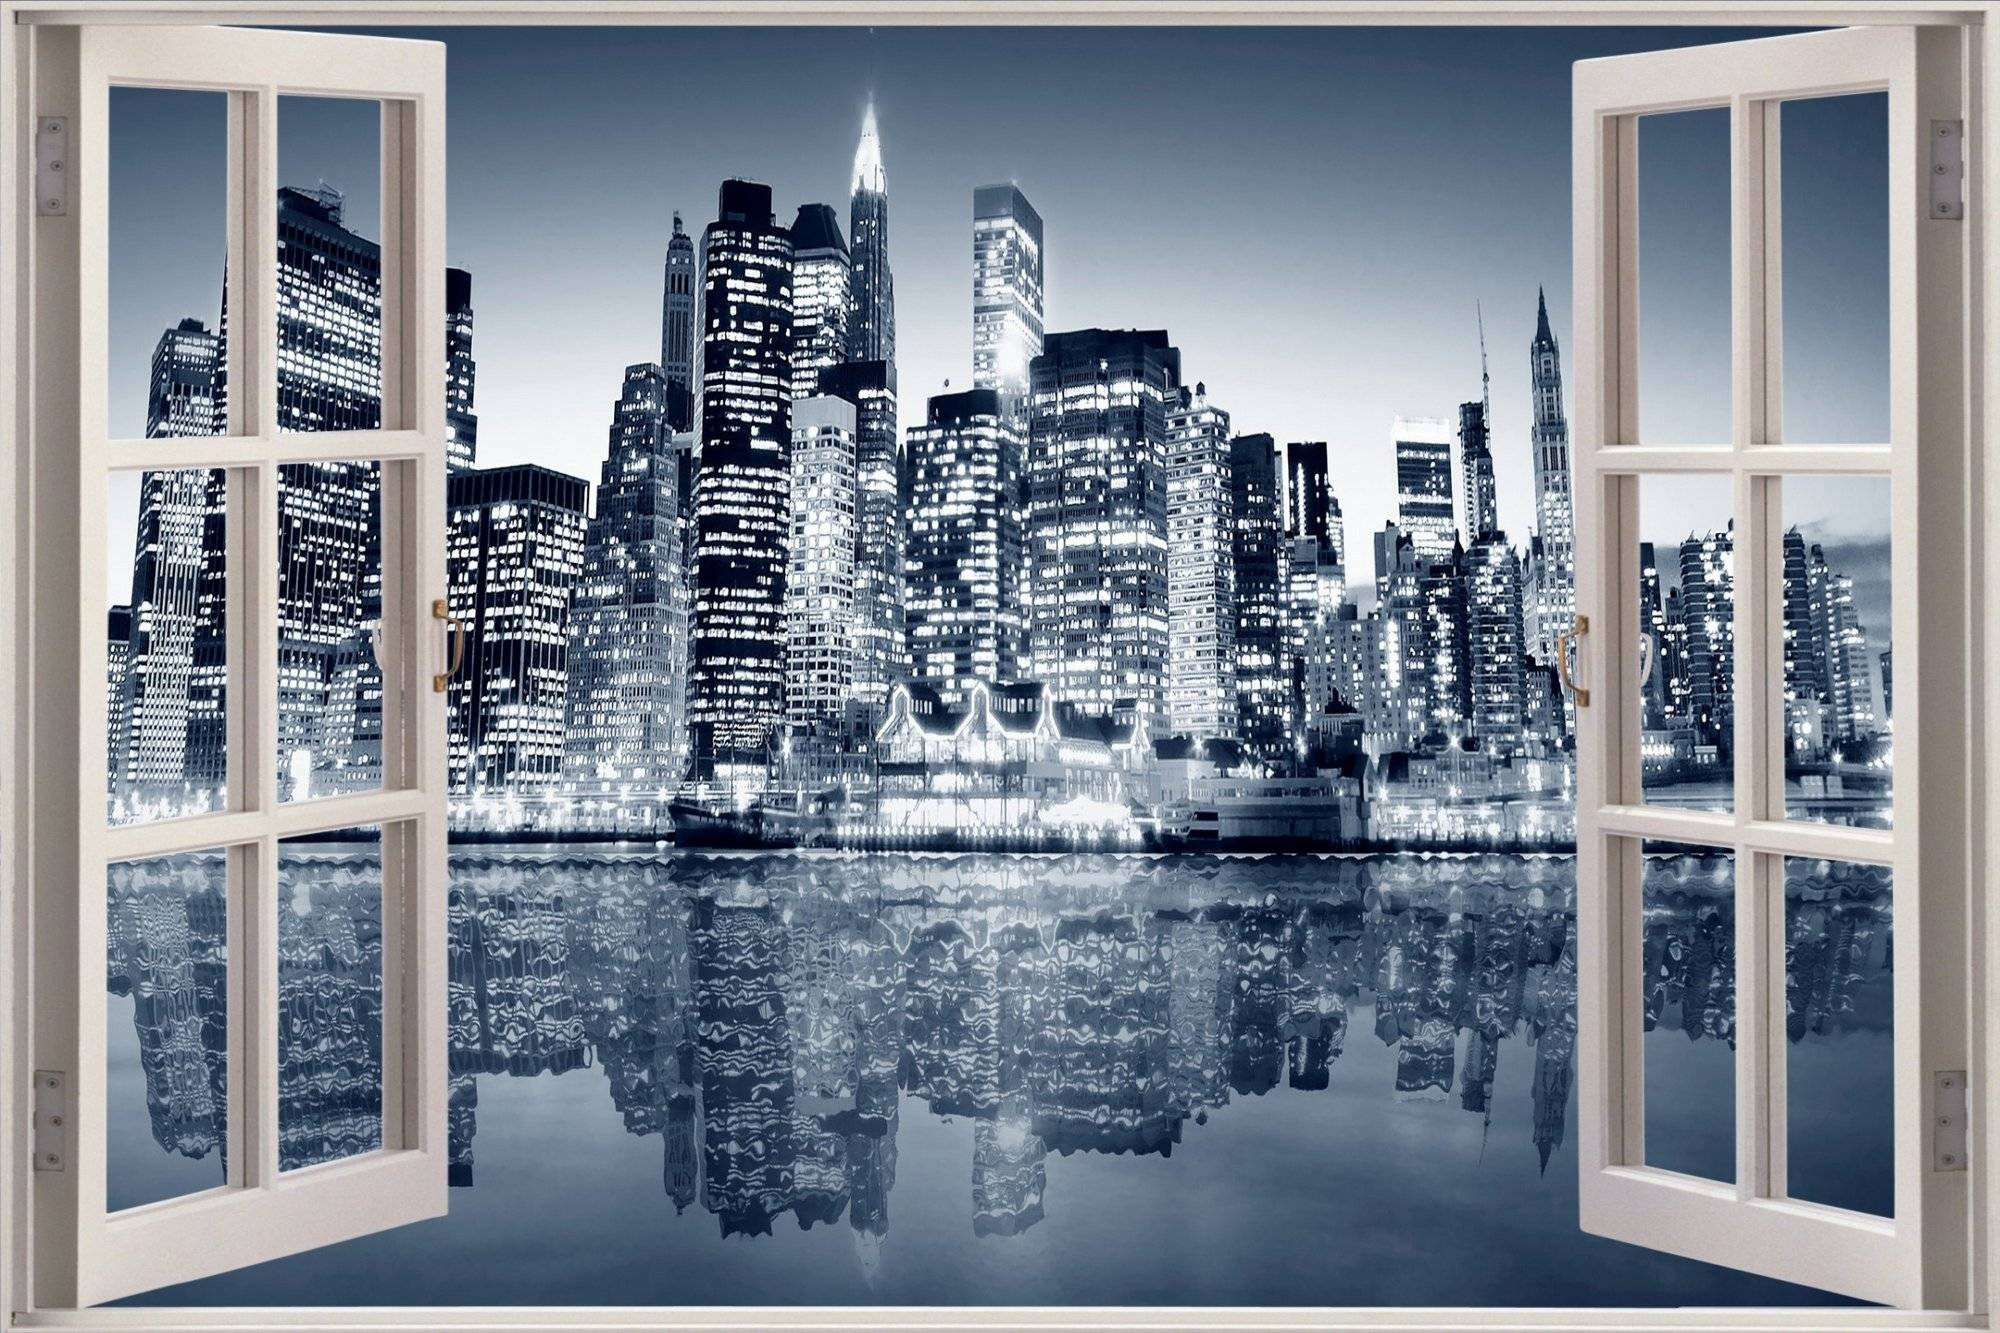 New York 3D Wall Art | Wallartideas Pertaining To Most Up To Date New York 3D Wall Art (View 11 of 20)